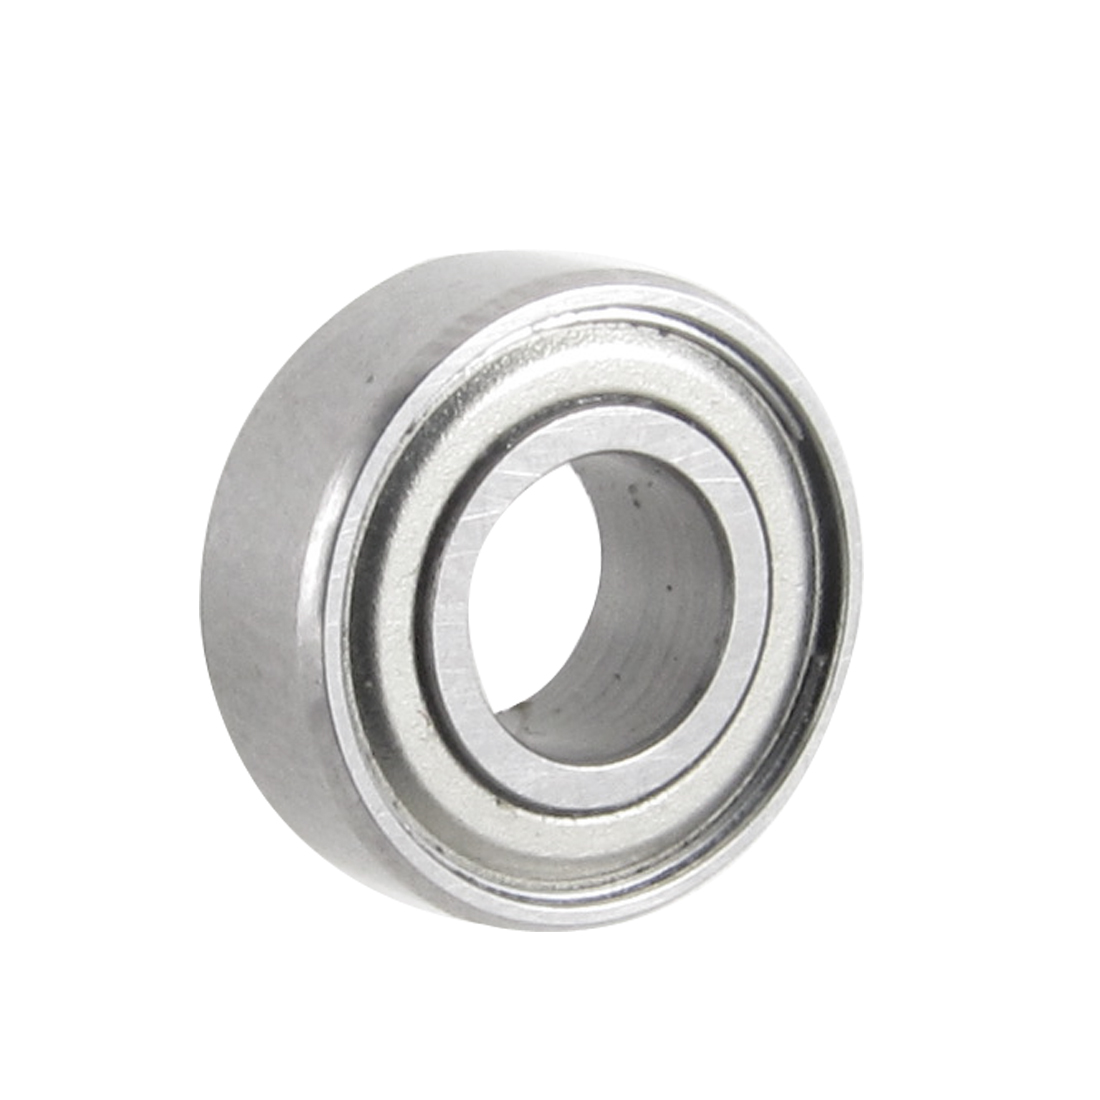 Stainless Steel Dual Shielded Deep Groove Radial Ball Bearing 5mmx11mmx4mm